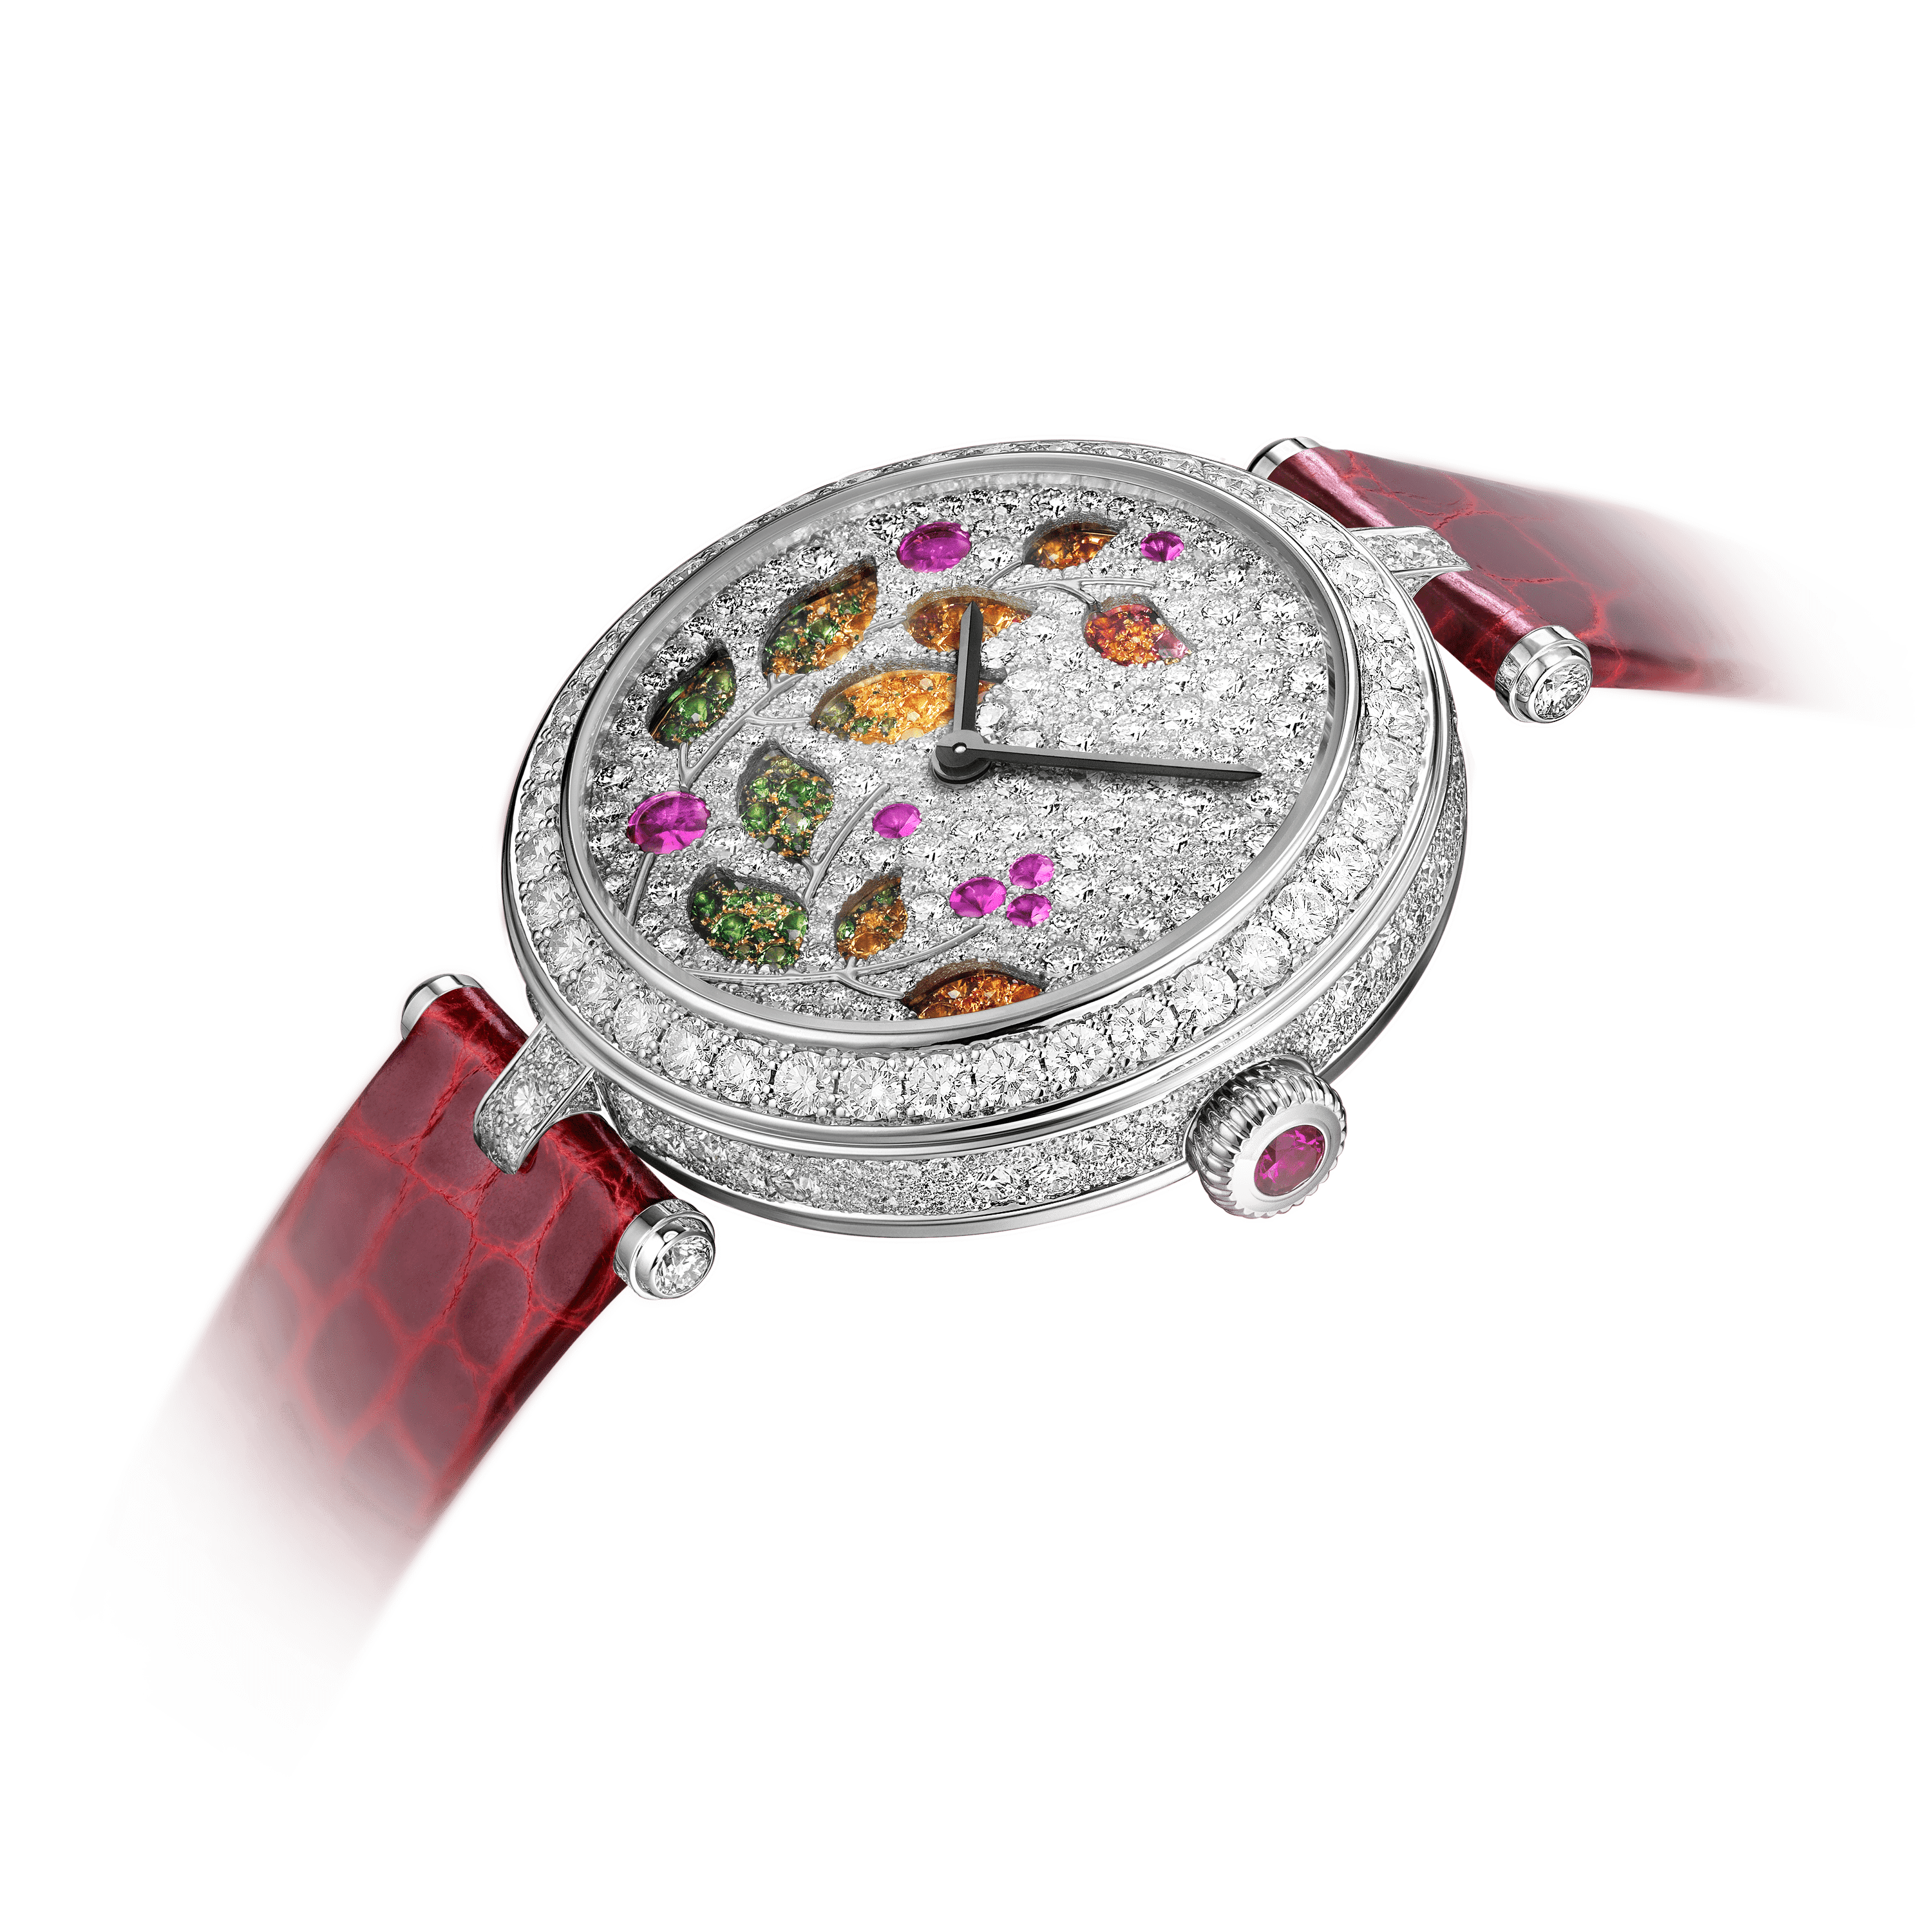 Lady Jour des Fleurs Watch,Alligator Shiny - Detail View - VCARO8O000 - Van Cleef & Arpels